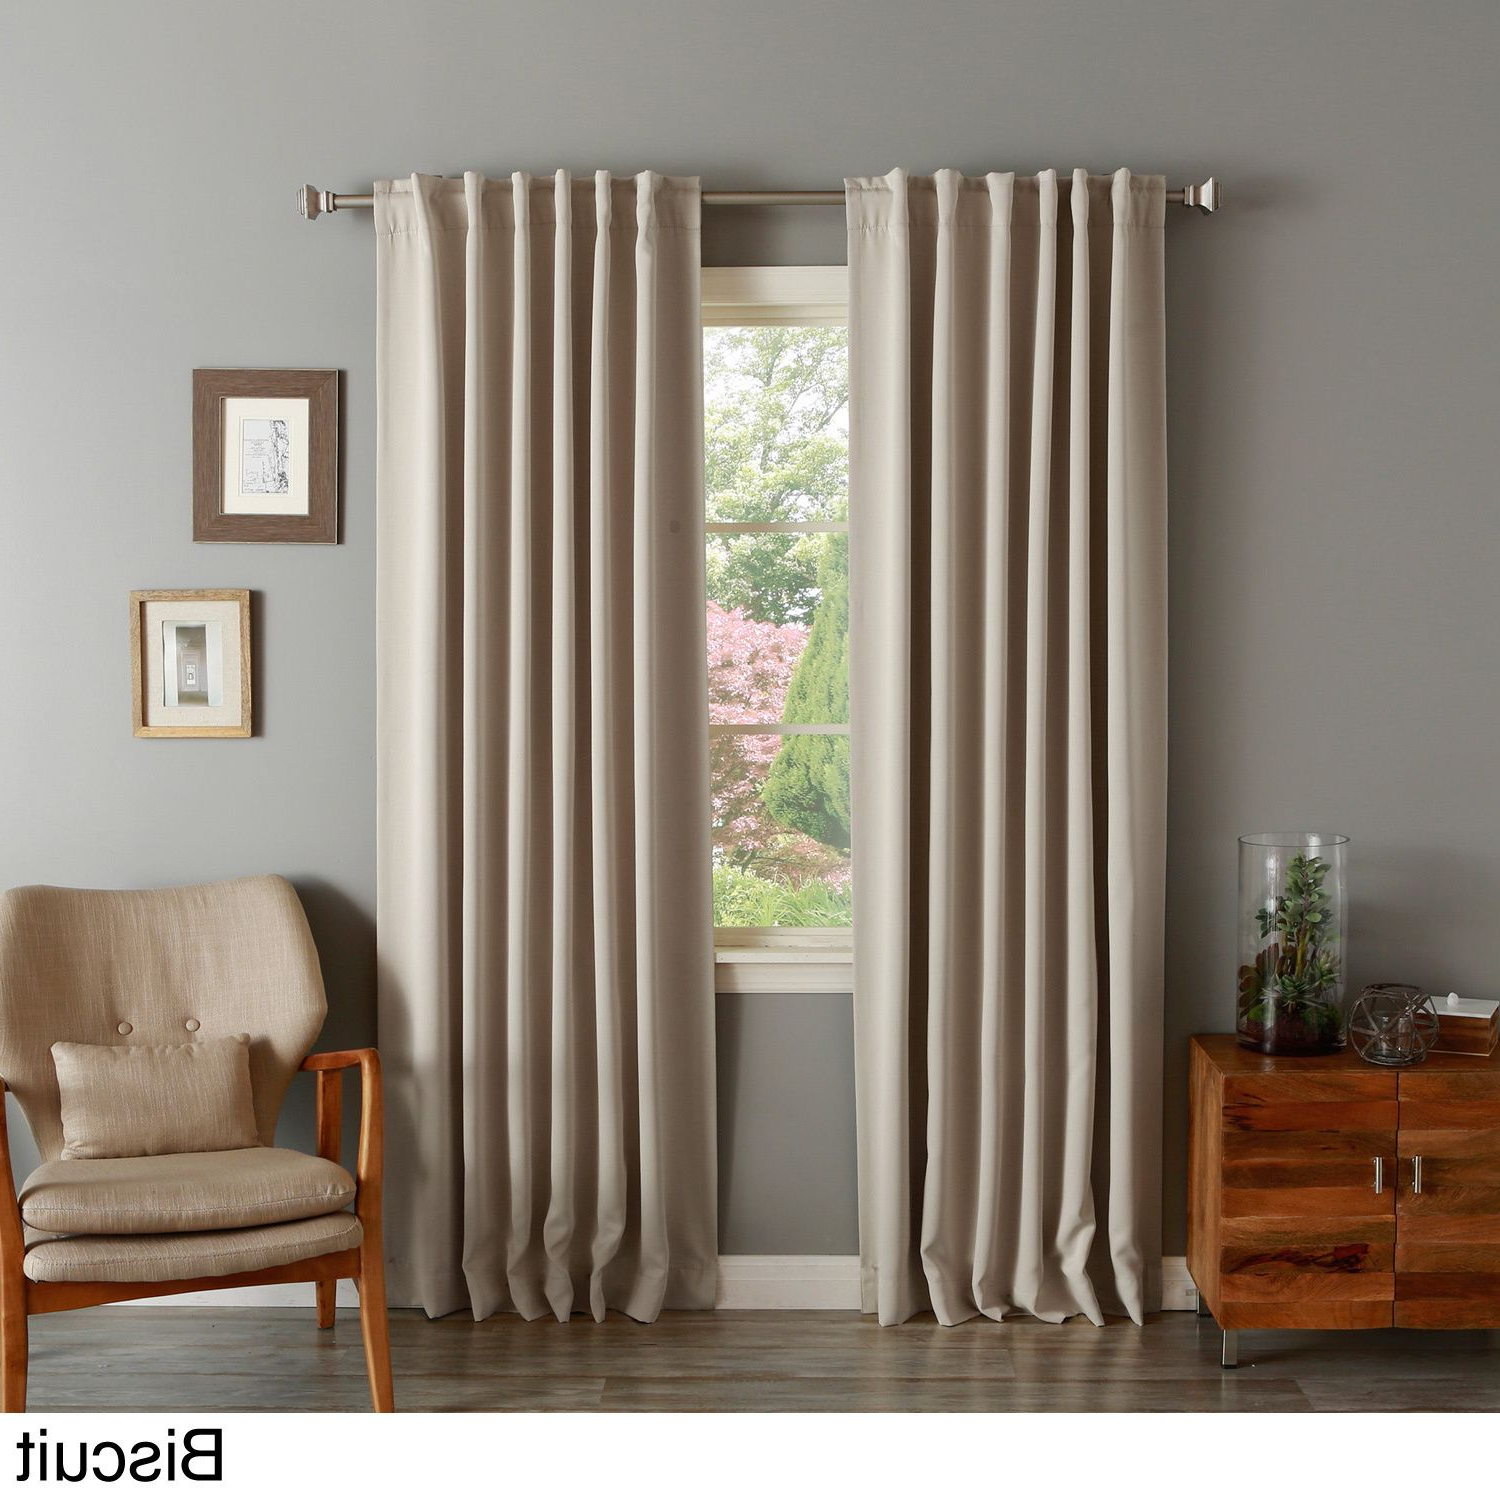 Julia Striped Room Darkening Window Curtain Panel Pairs Pertaining To Famous Solid Insulated Thermal Blackout Curtain Panel Pair In 2019 (Gallery 9 of 20)